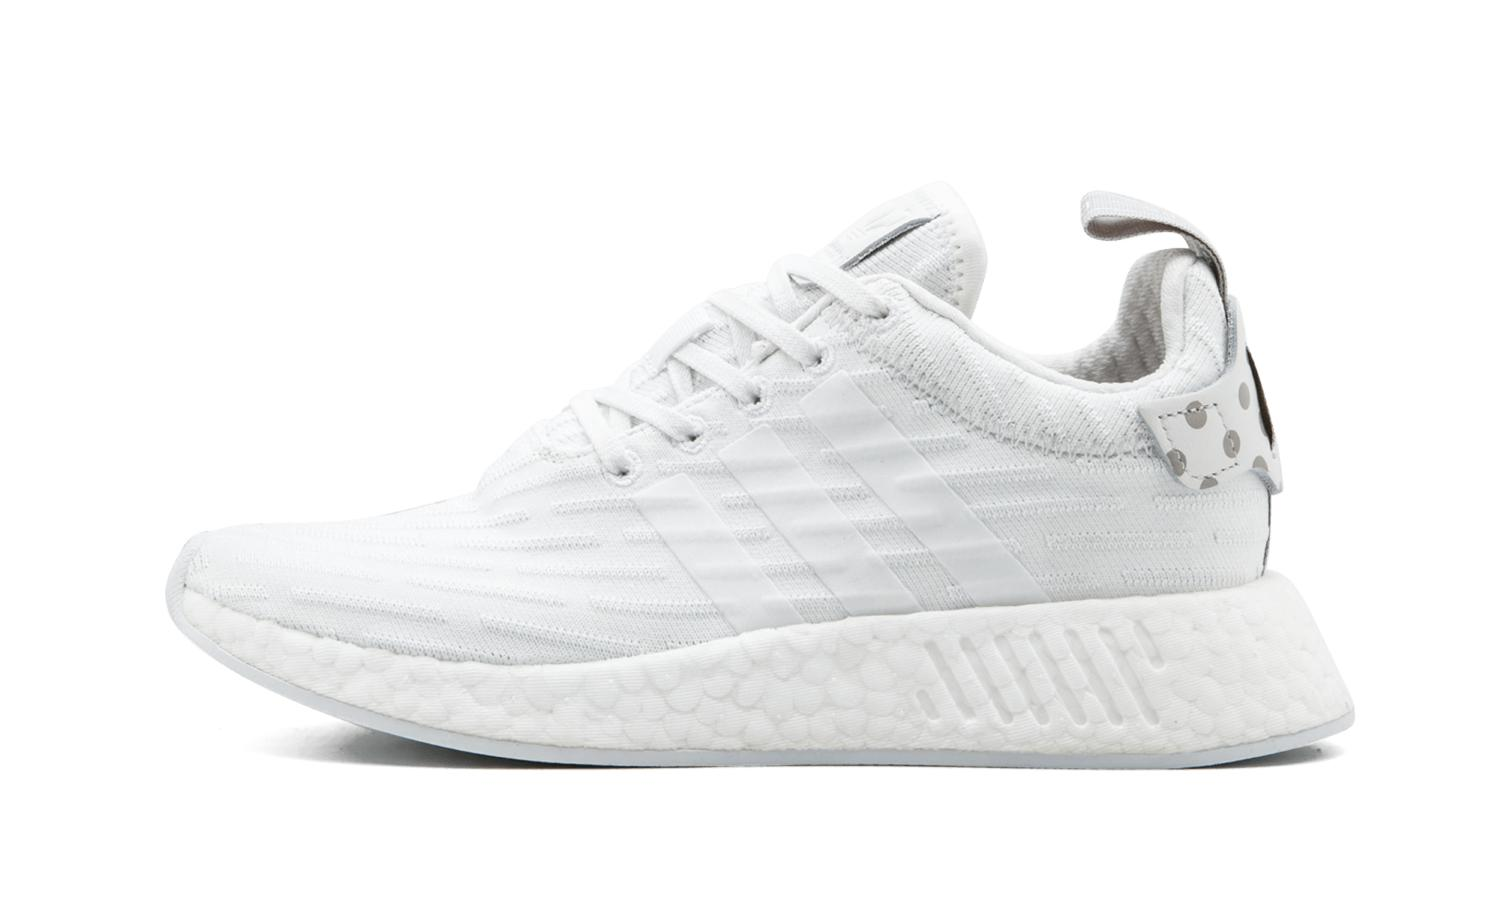 Lyst - adidas Nmd r2 W - By2245 in White 278fac36fe